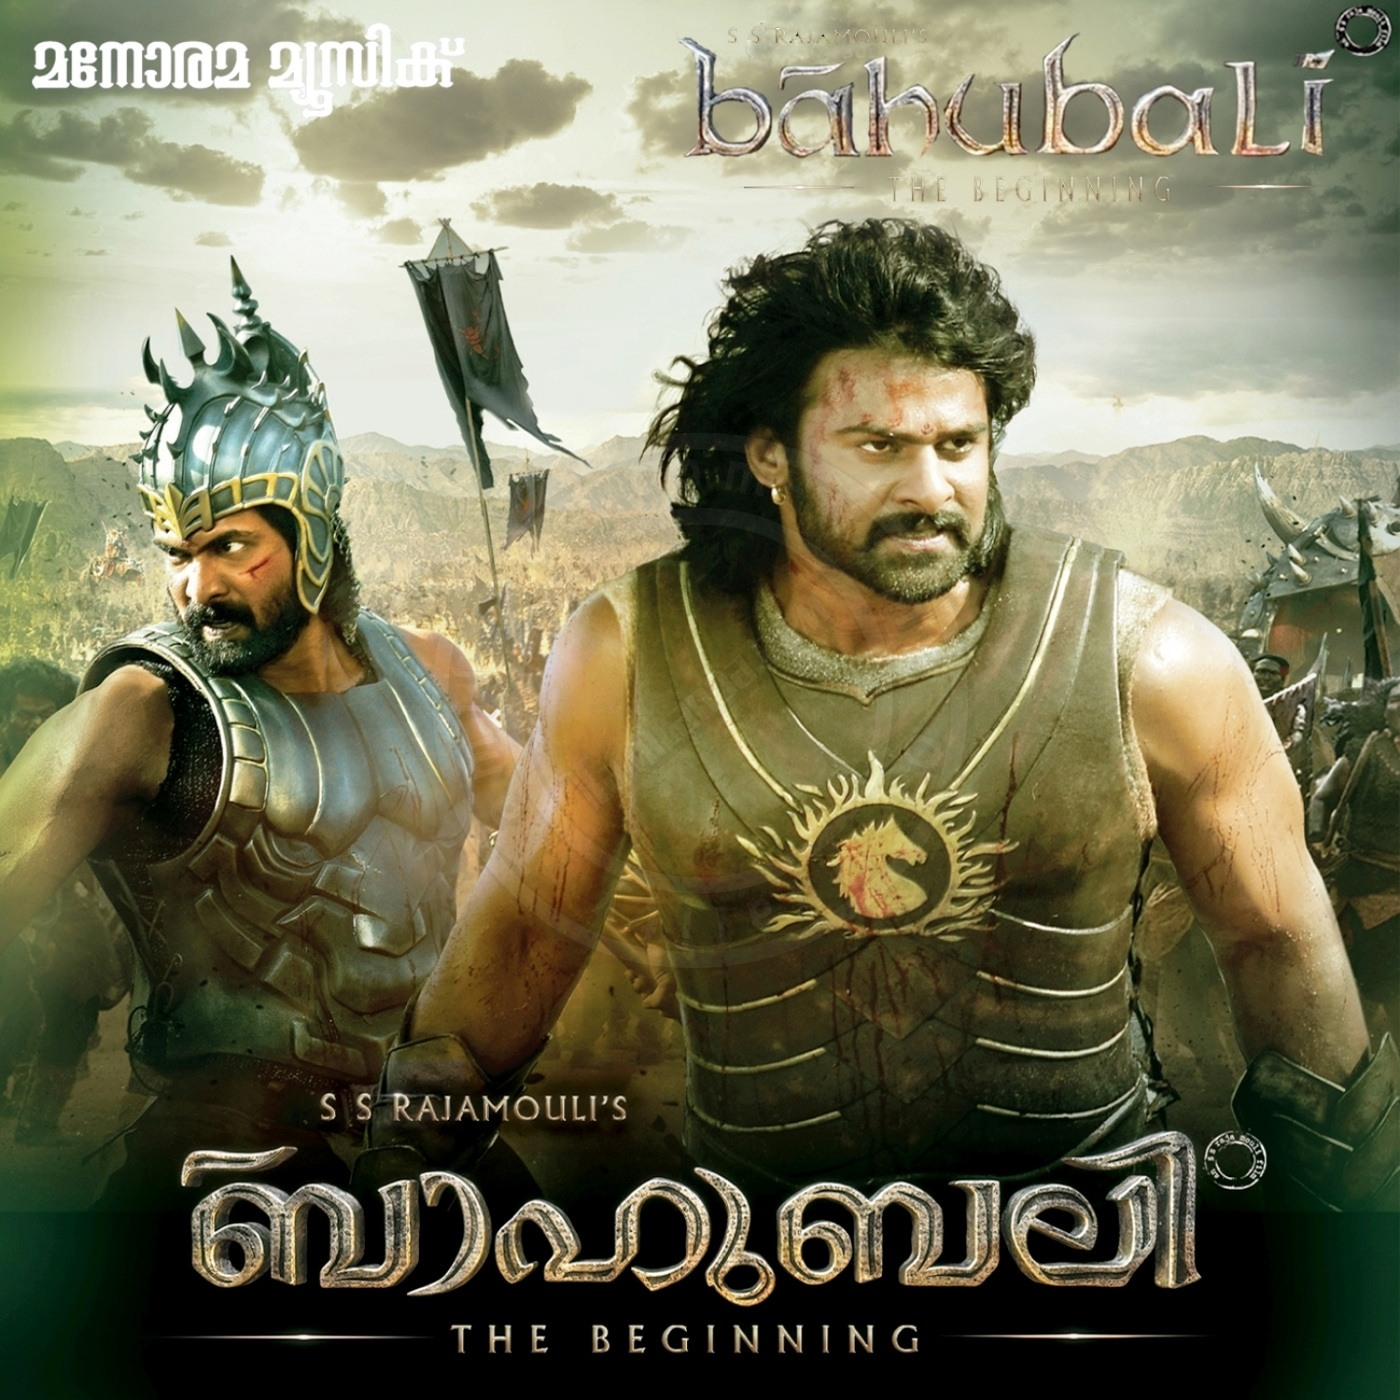 Baahubali – The Beginning FLAC Songs